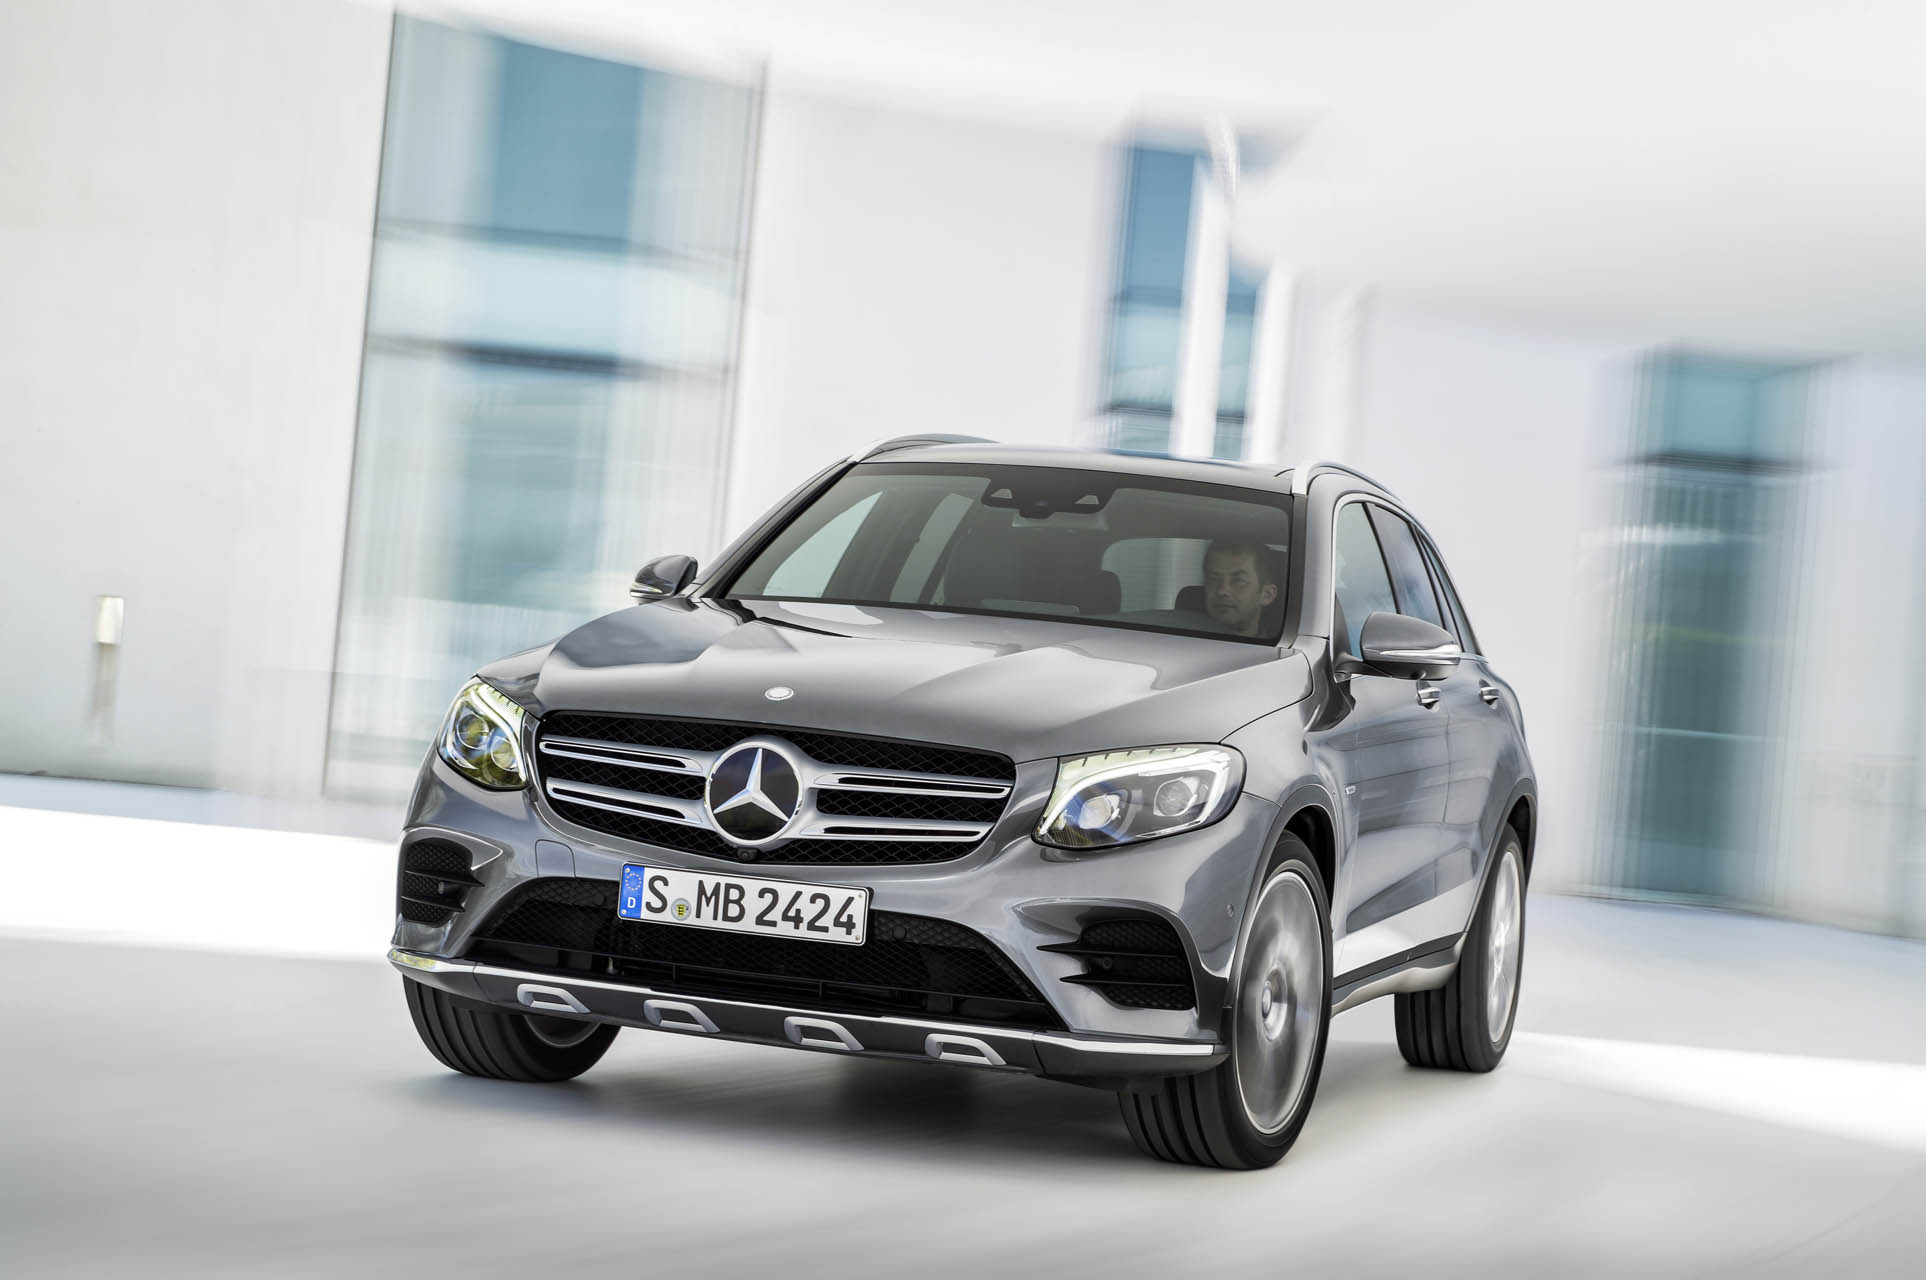 Mercedes-Benz GLC I (X253) 2015 - now SUV 5 door #1